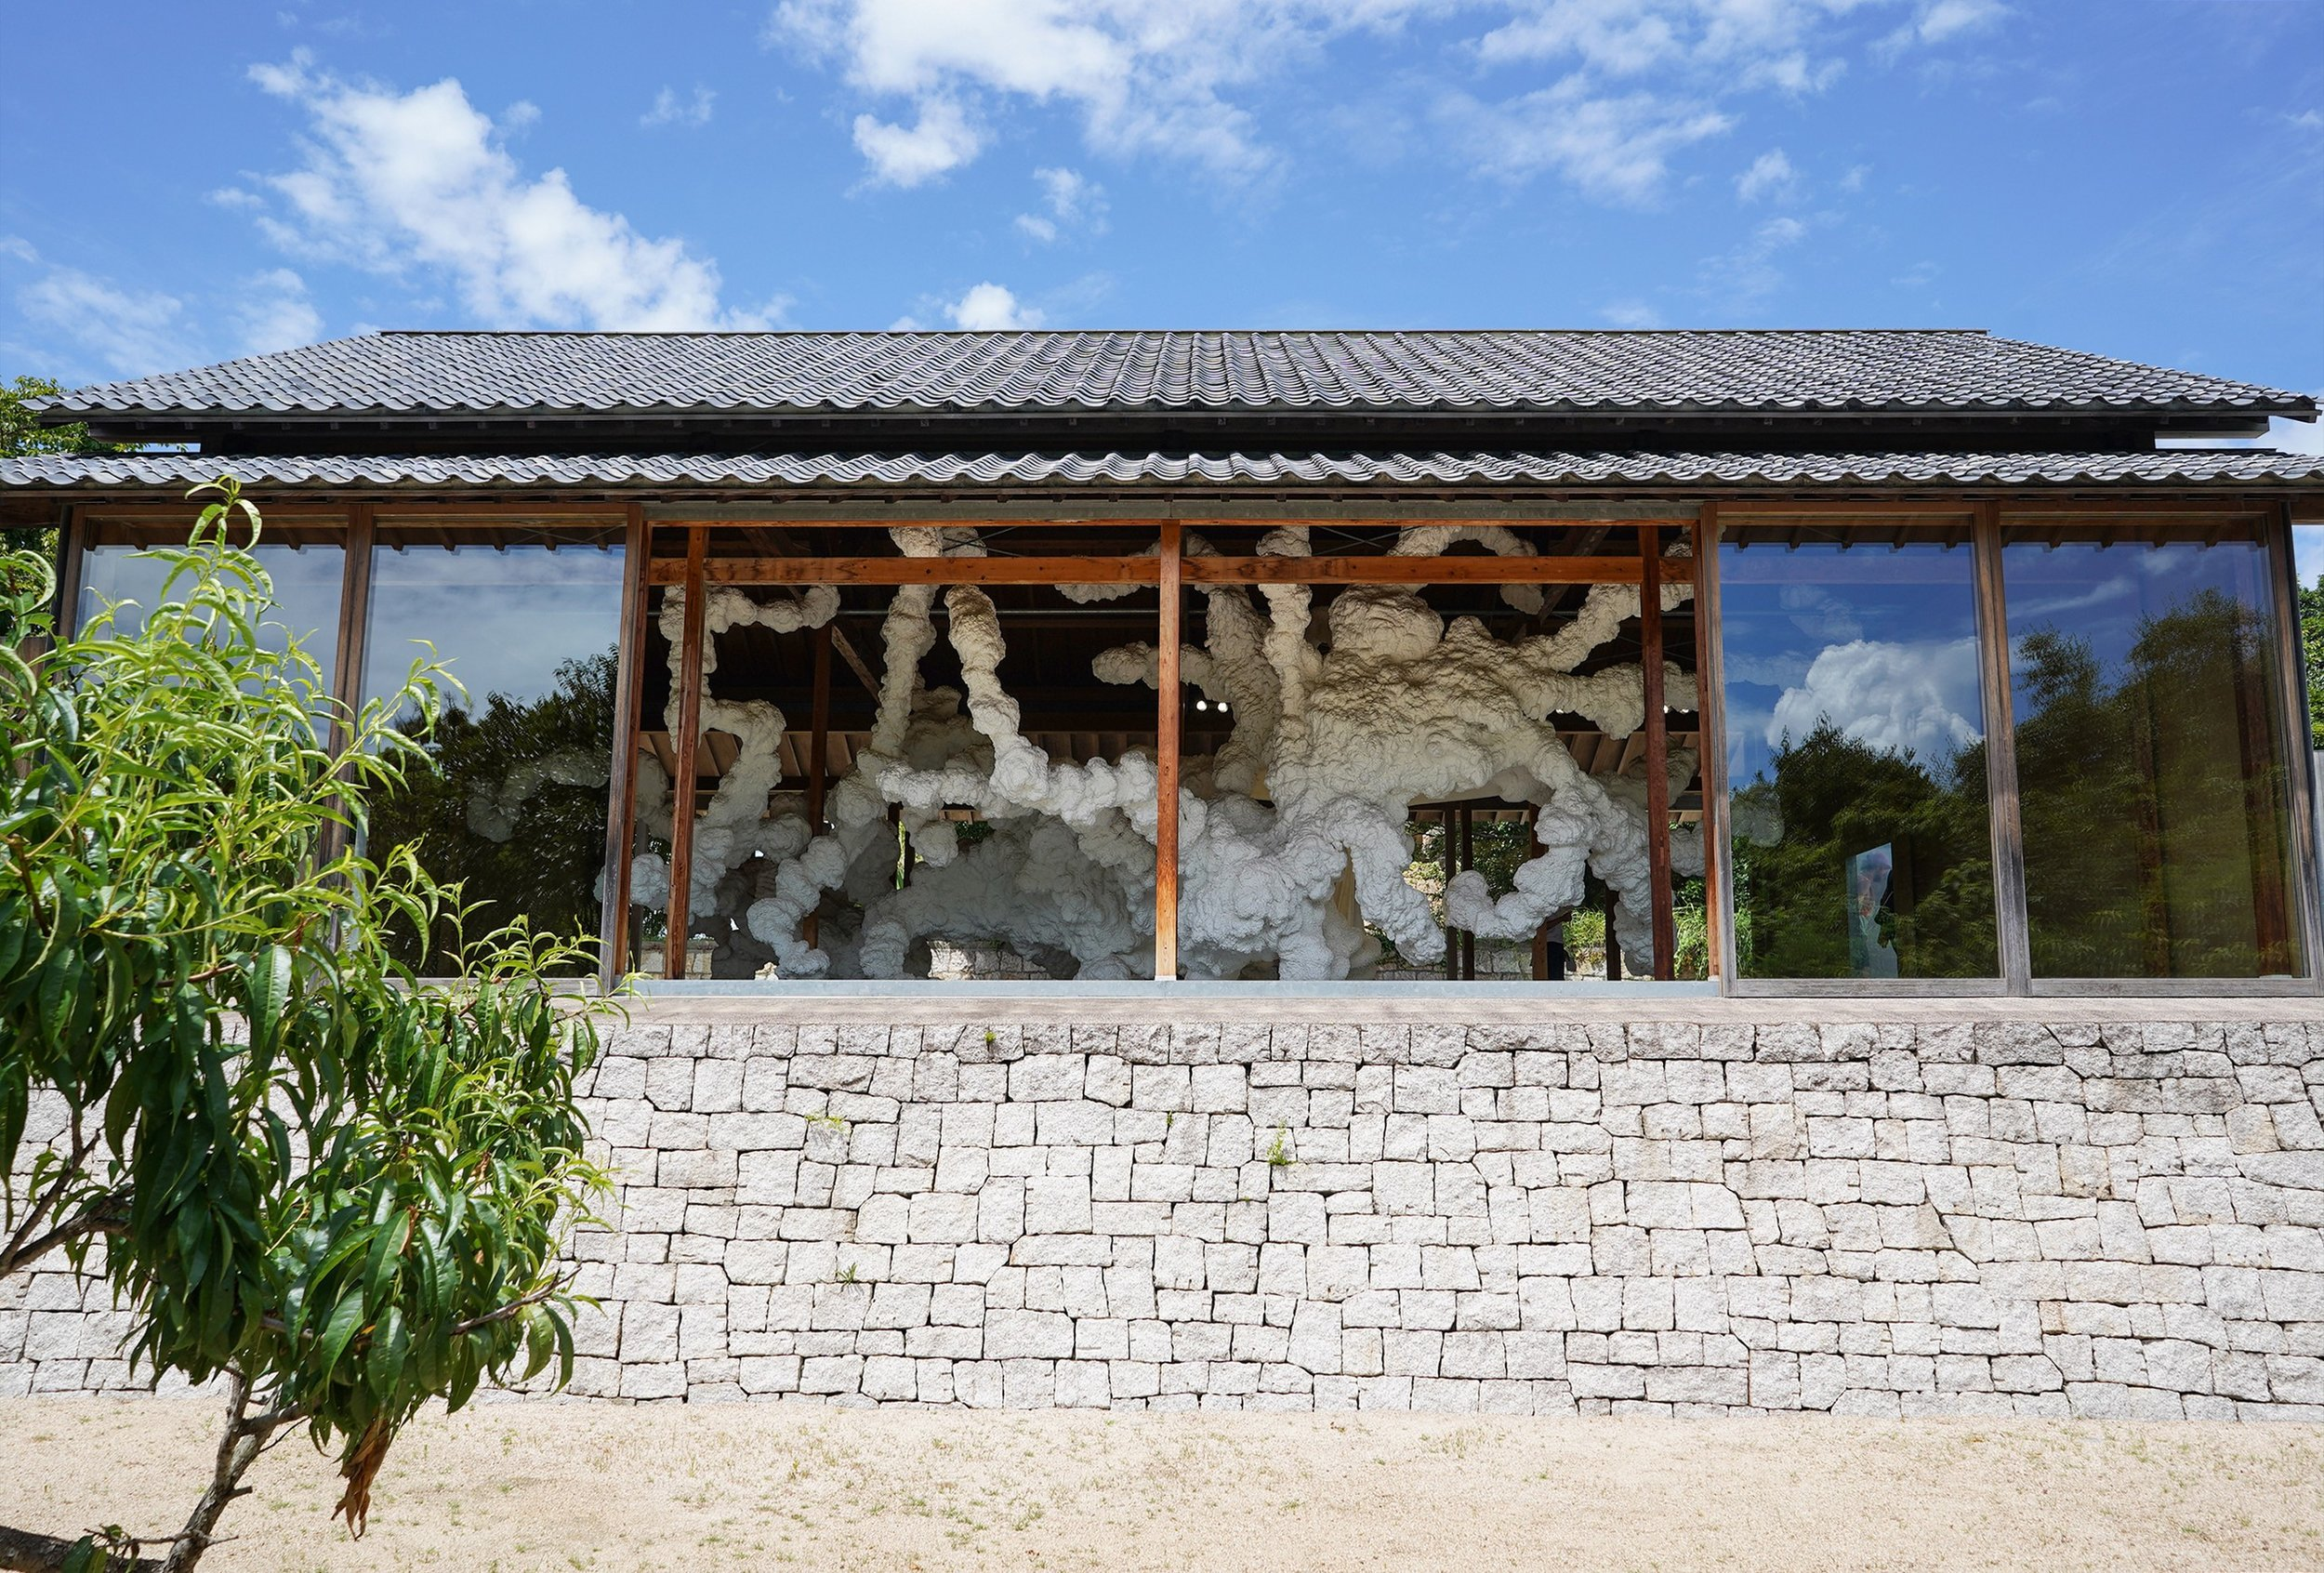 """Kohei Nawa's installation in """"F Art House"""" on Inujima. Kazuyo Sejima was the architect for all of Inujima's """"Art House Project"""" buildings. Photo by the author."""